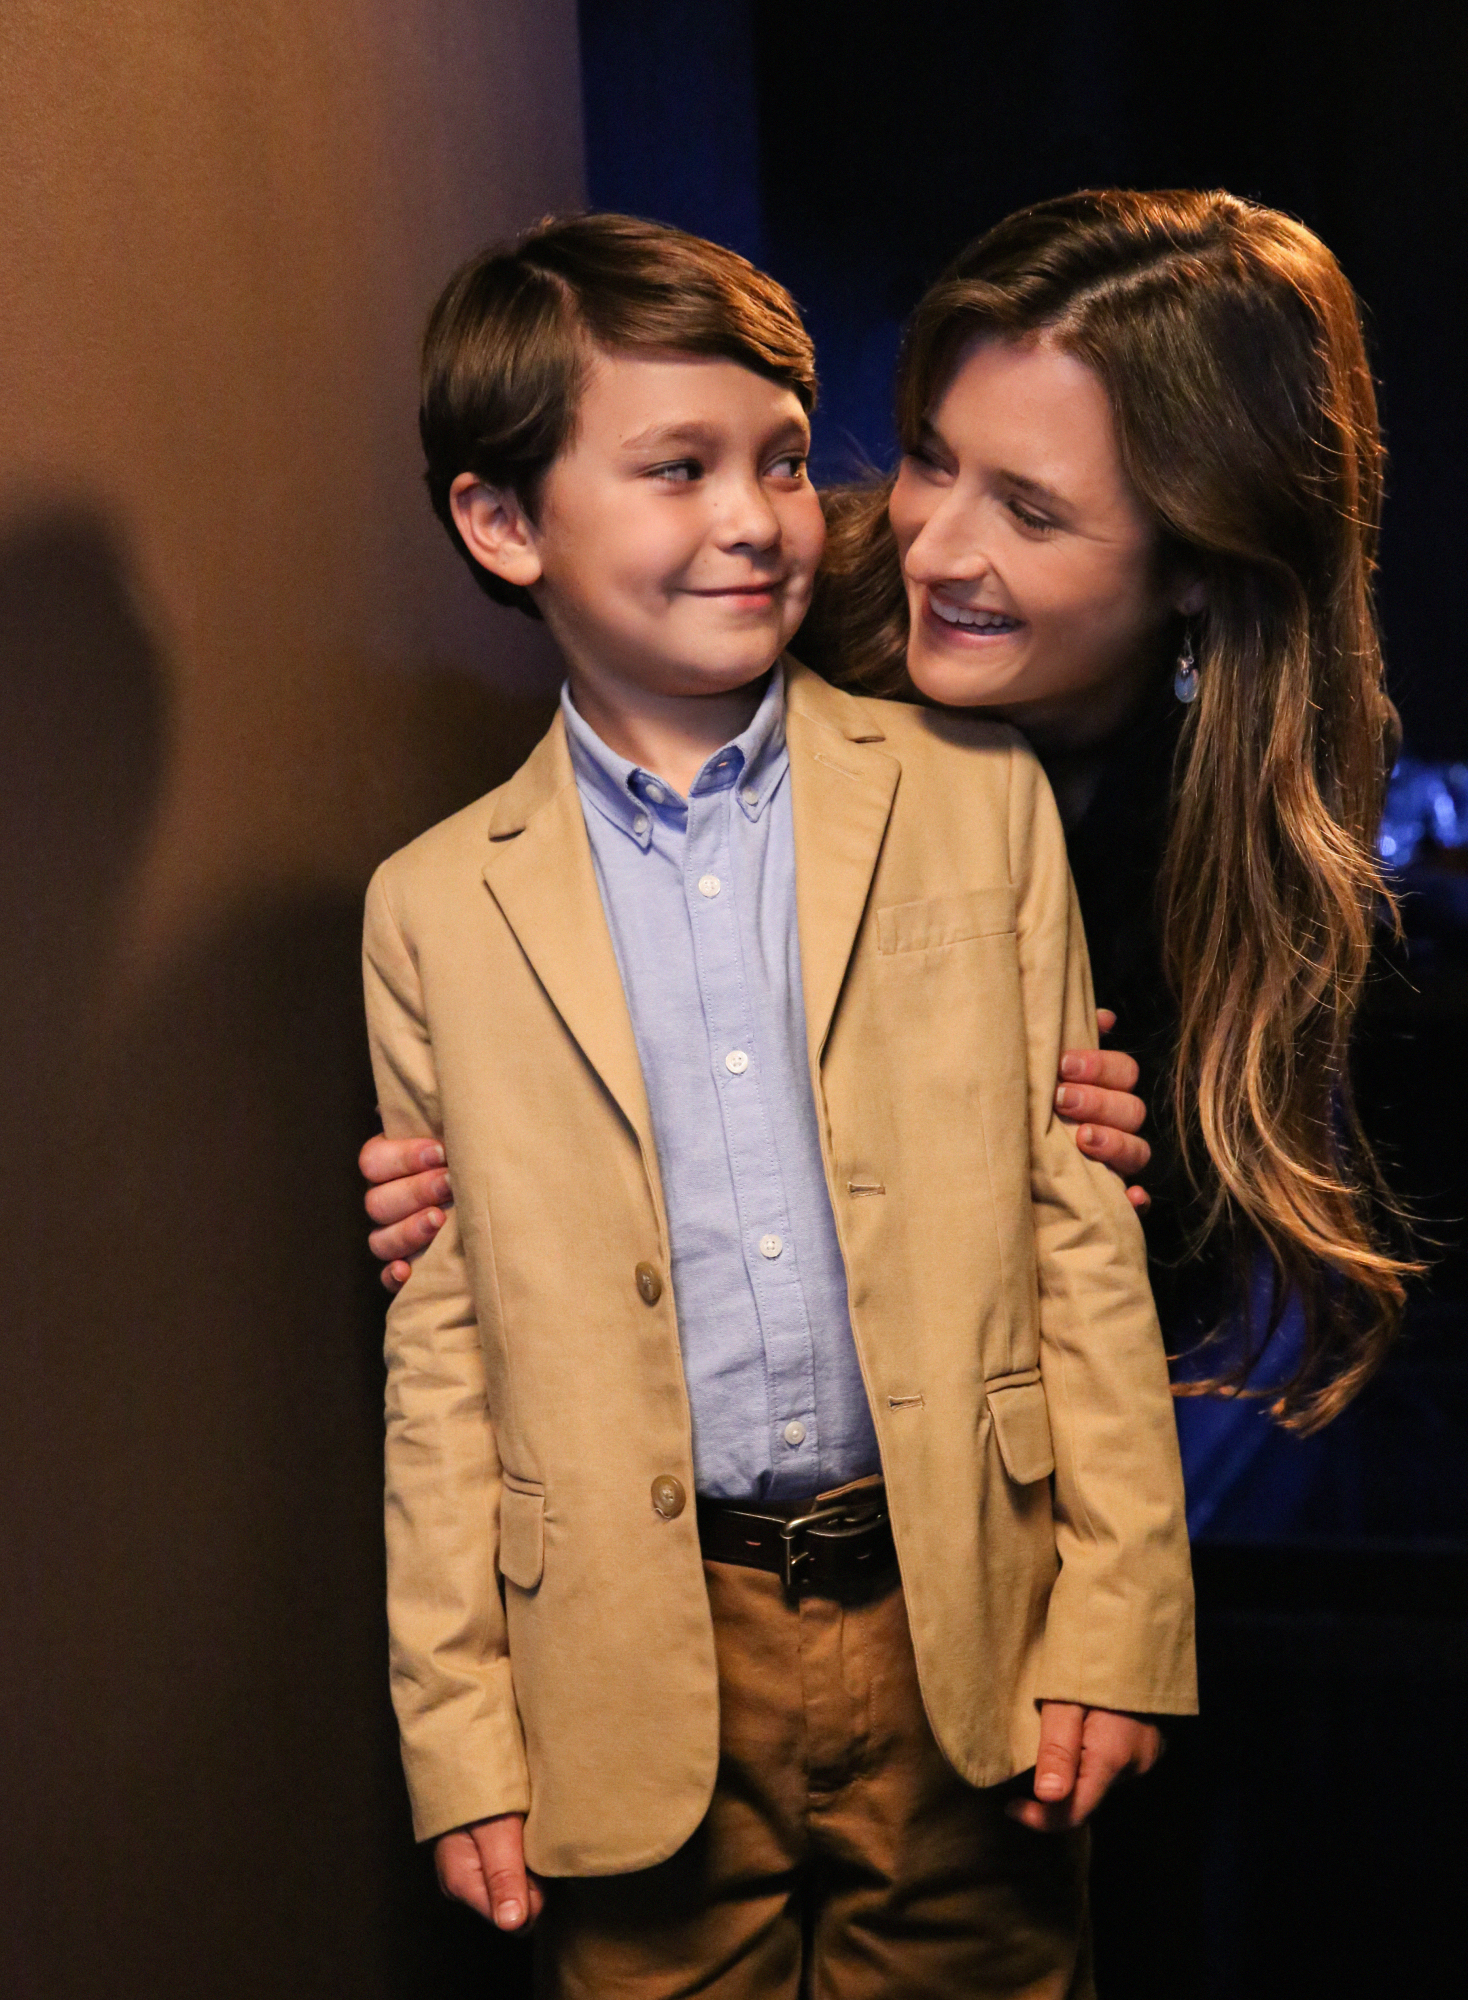 Grace Gummer and Pierce Gagnon in Extant - First Look